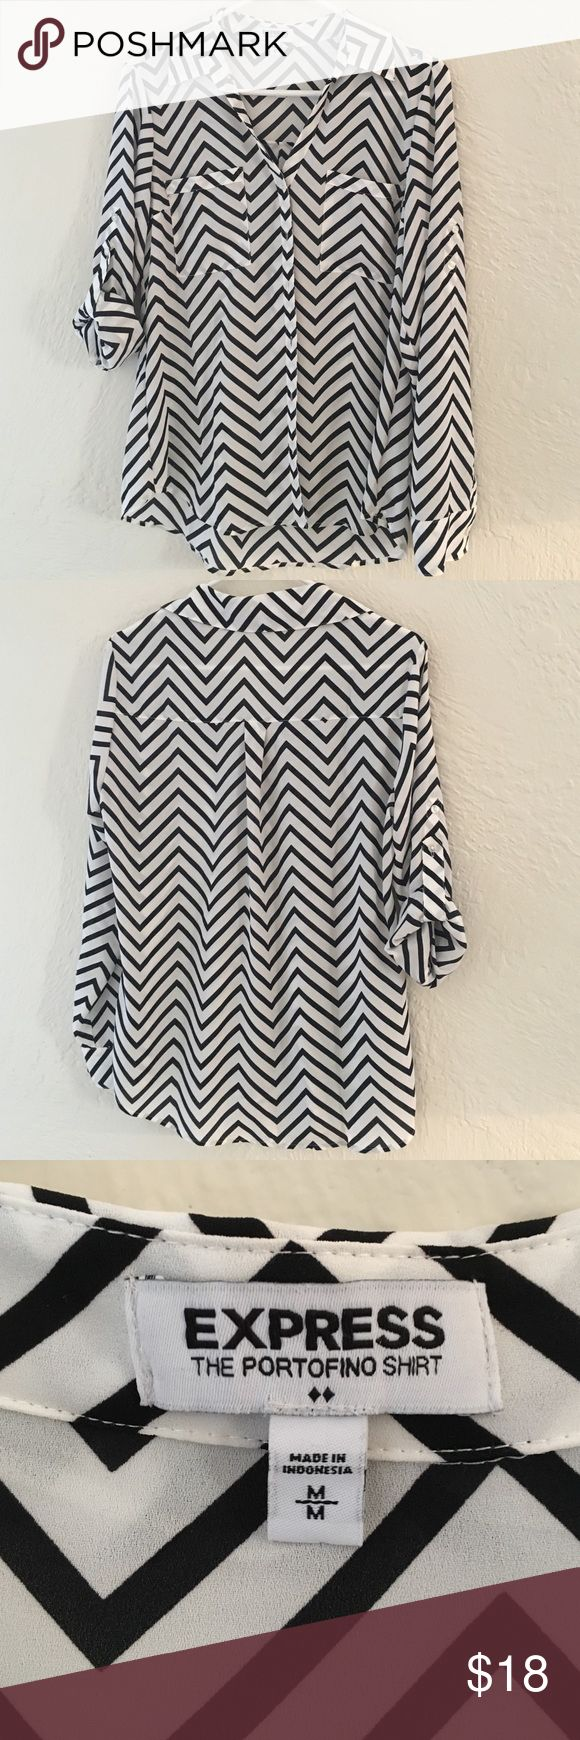 Express Portofino Chevron Blouse Portofino blouse in black and white chevron print. Can be worn full length sleeve or folded at 3/4 length with strap and button Express Tops Blouses